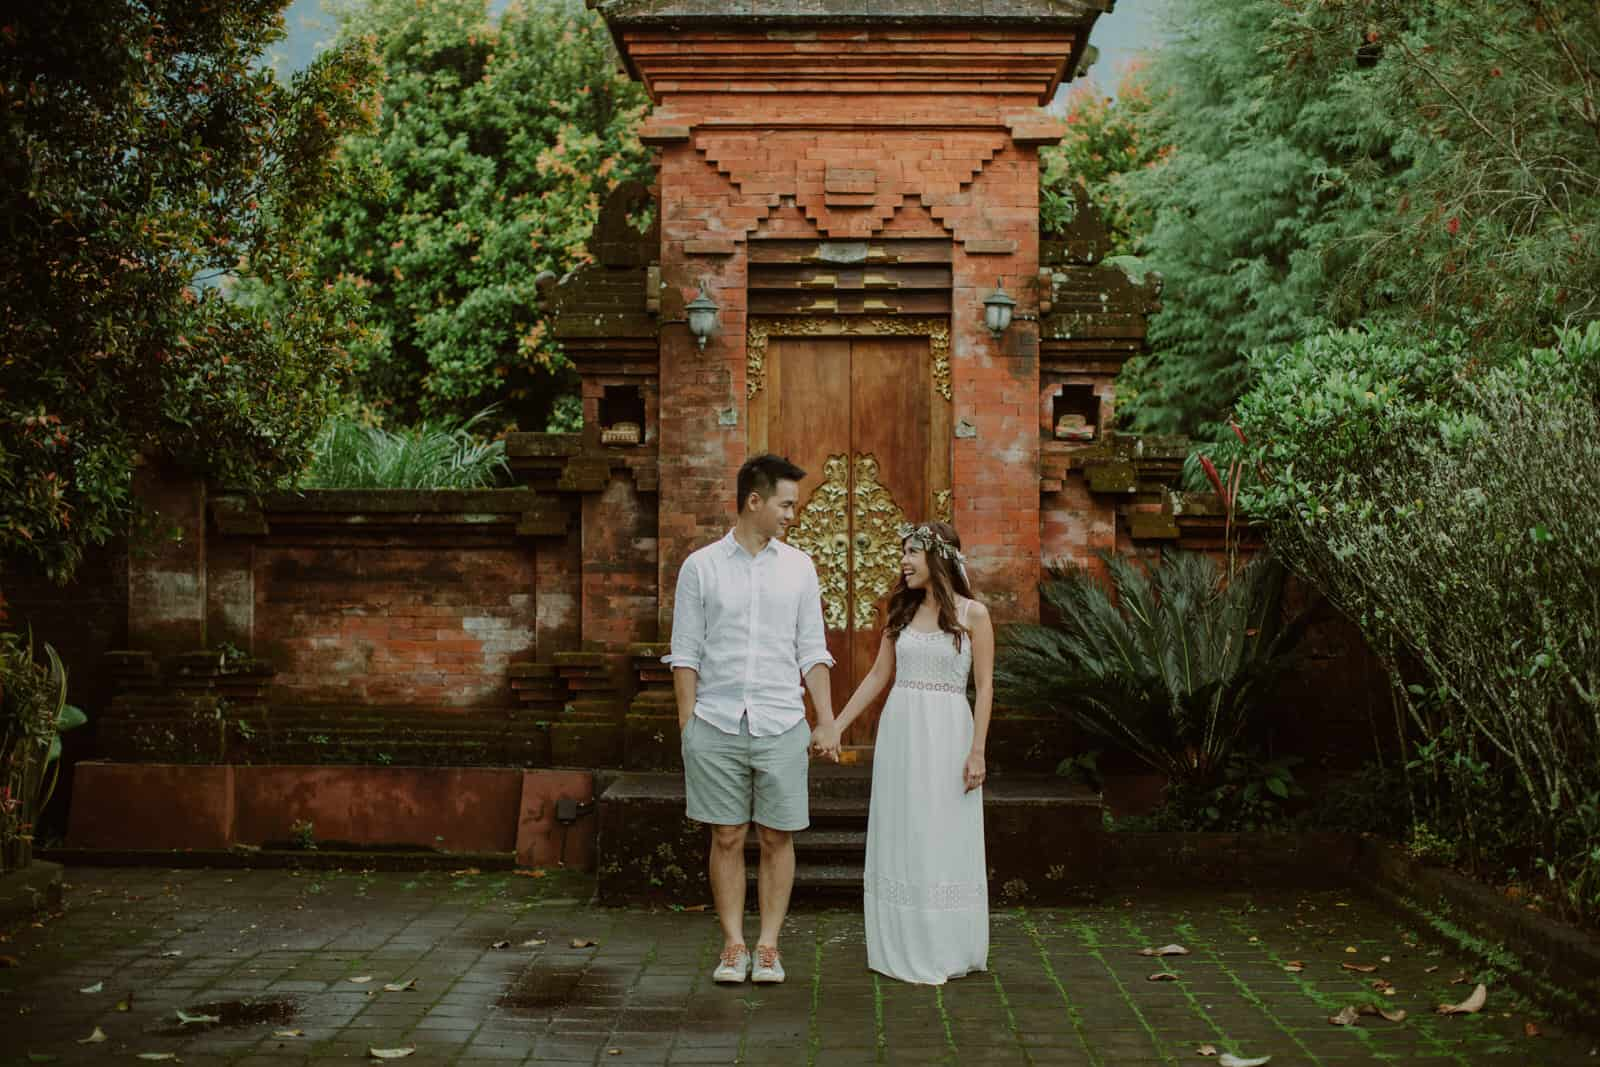 ULUN DANU BERATAN TEMPLE AND LAKE BERATAN cliff choong destination portrait and wedding photographer malaysia kuala lumpur bali adventure sea waterfall prewedding shots bride and groom boat on the water